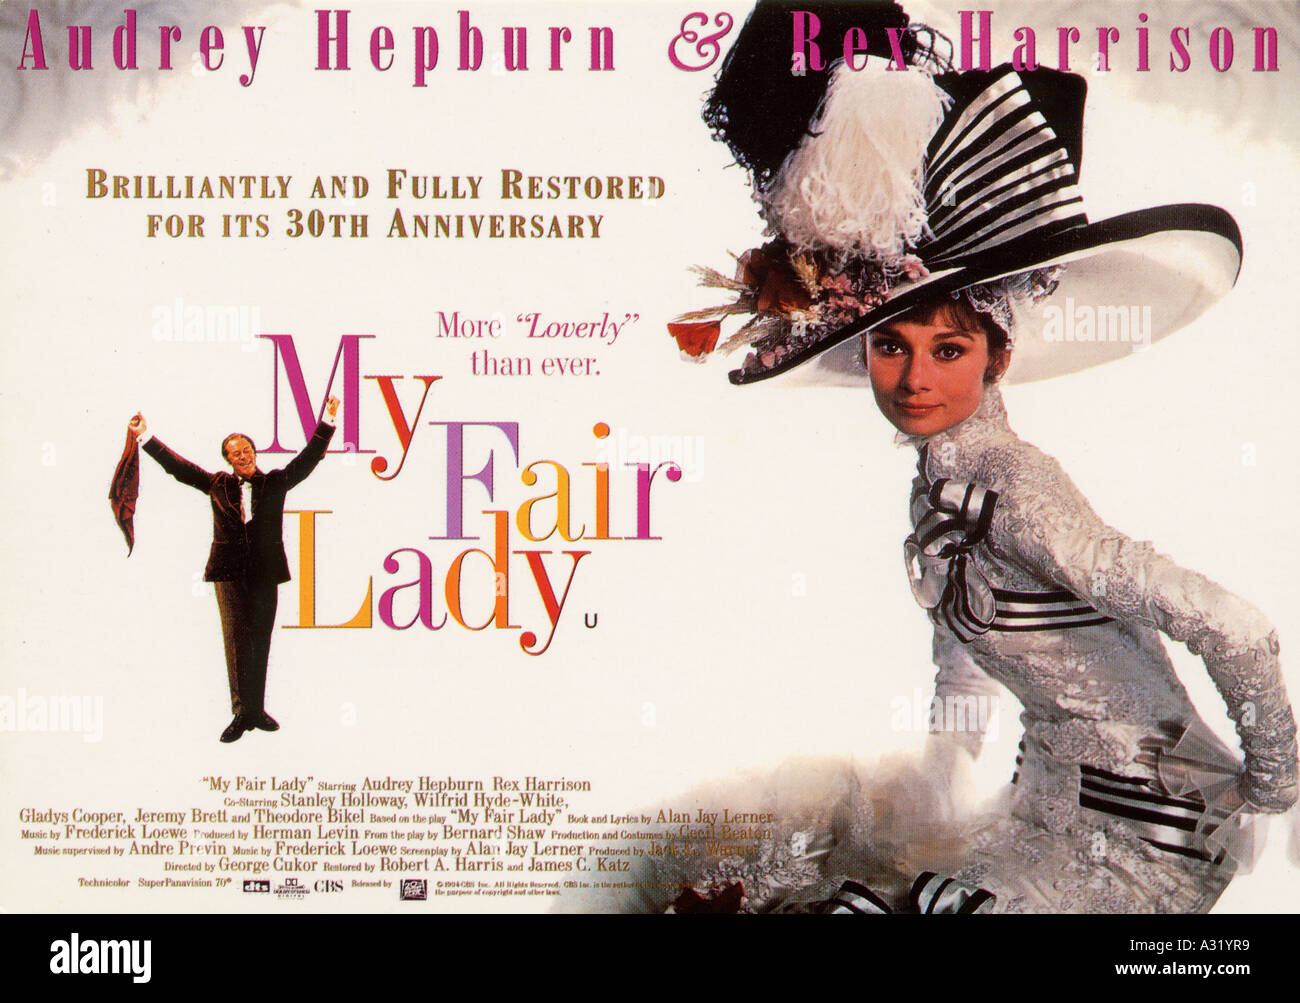 MY FAIR LADY poster for the 1964 Warner film musical - Stock Image